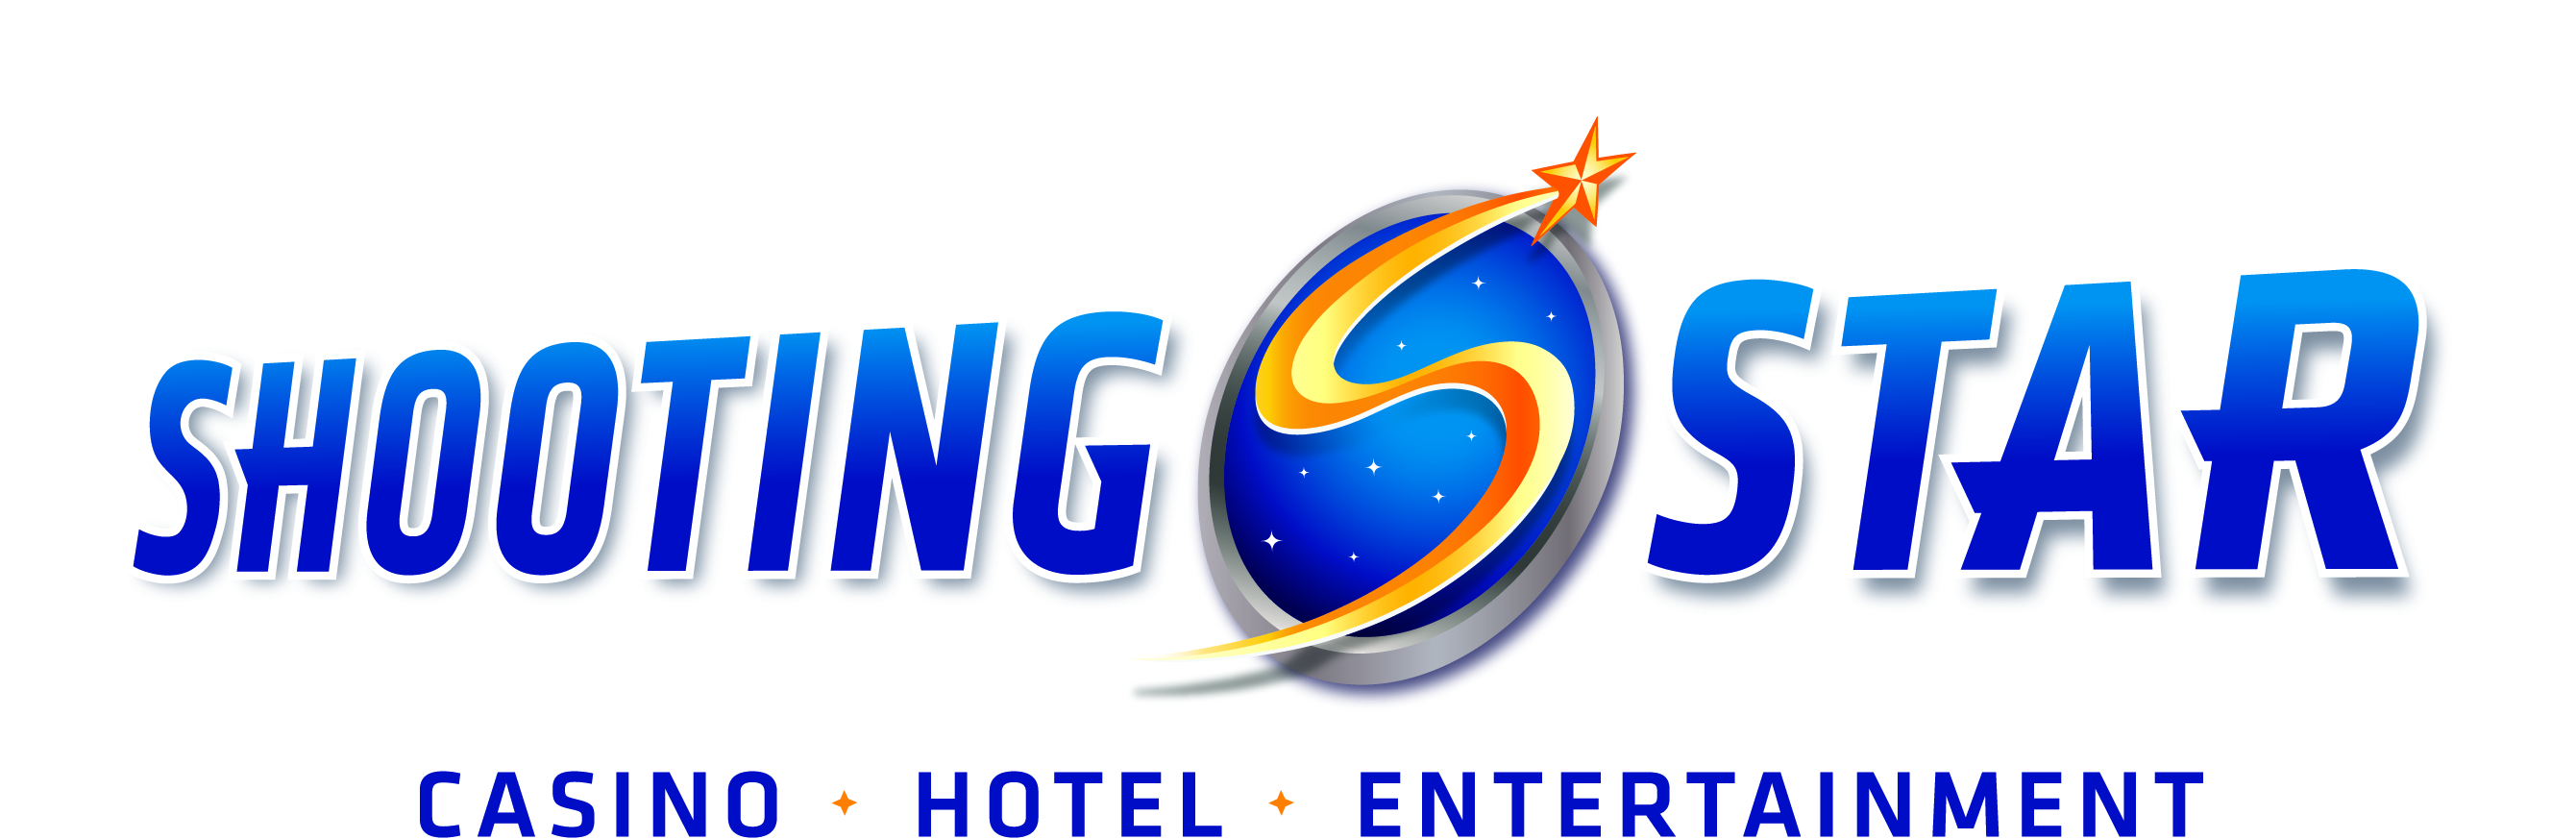 Shooting star casino credit union